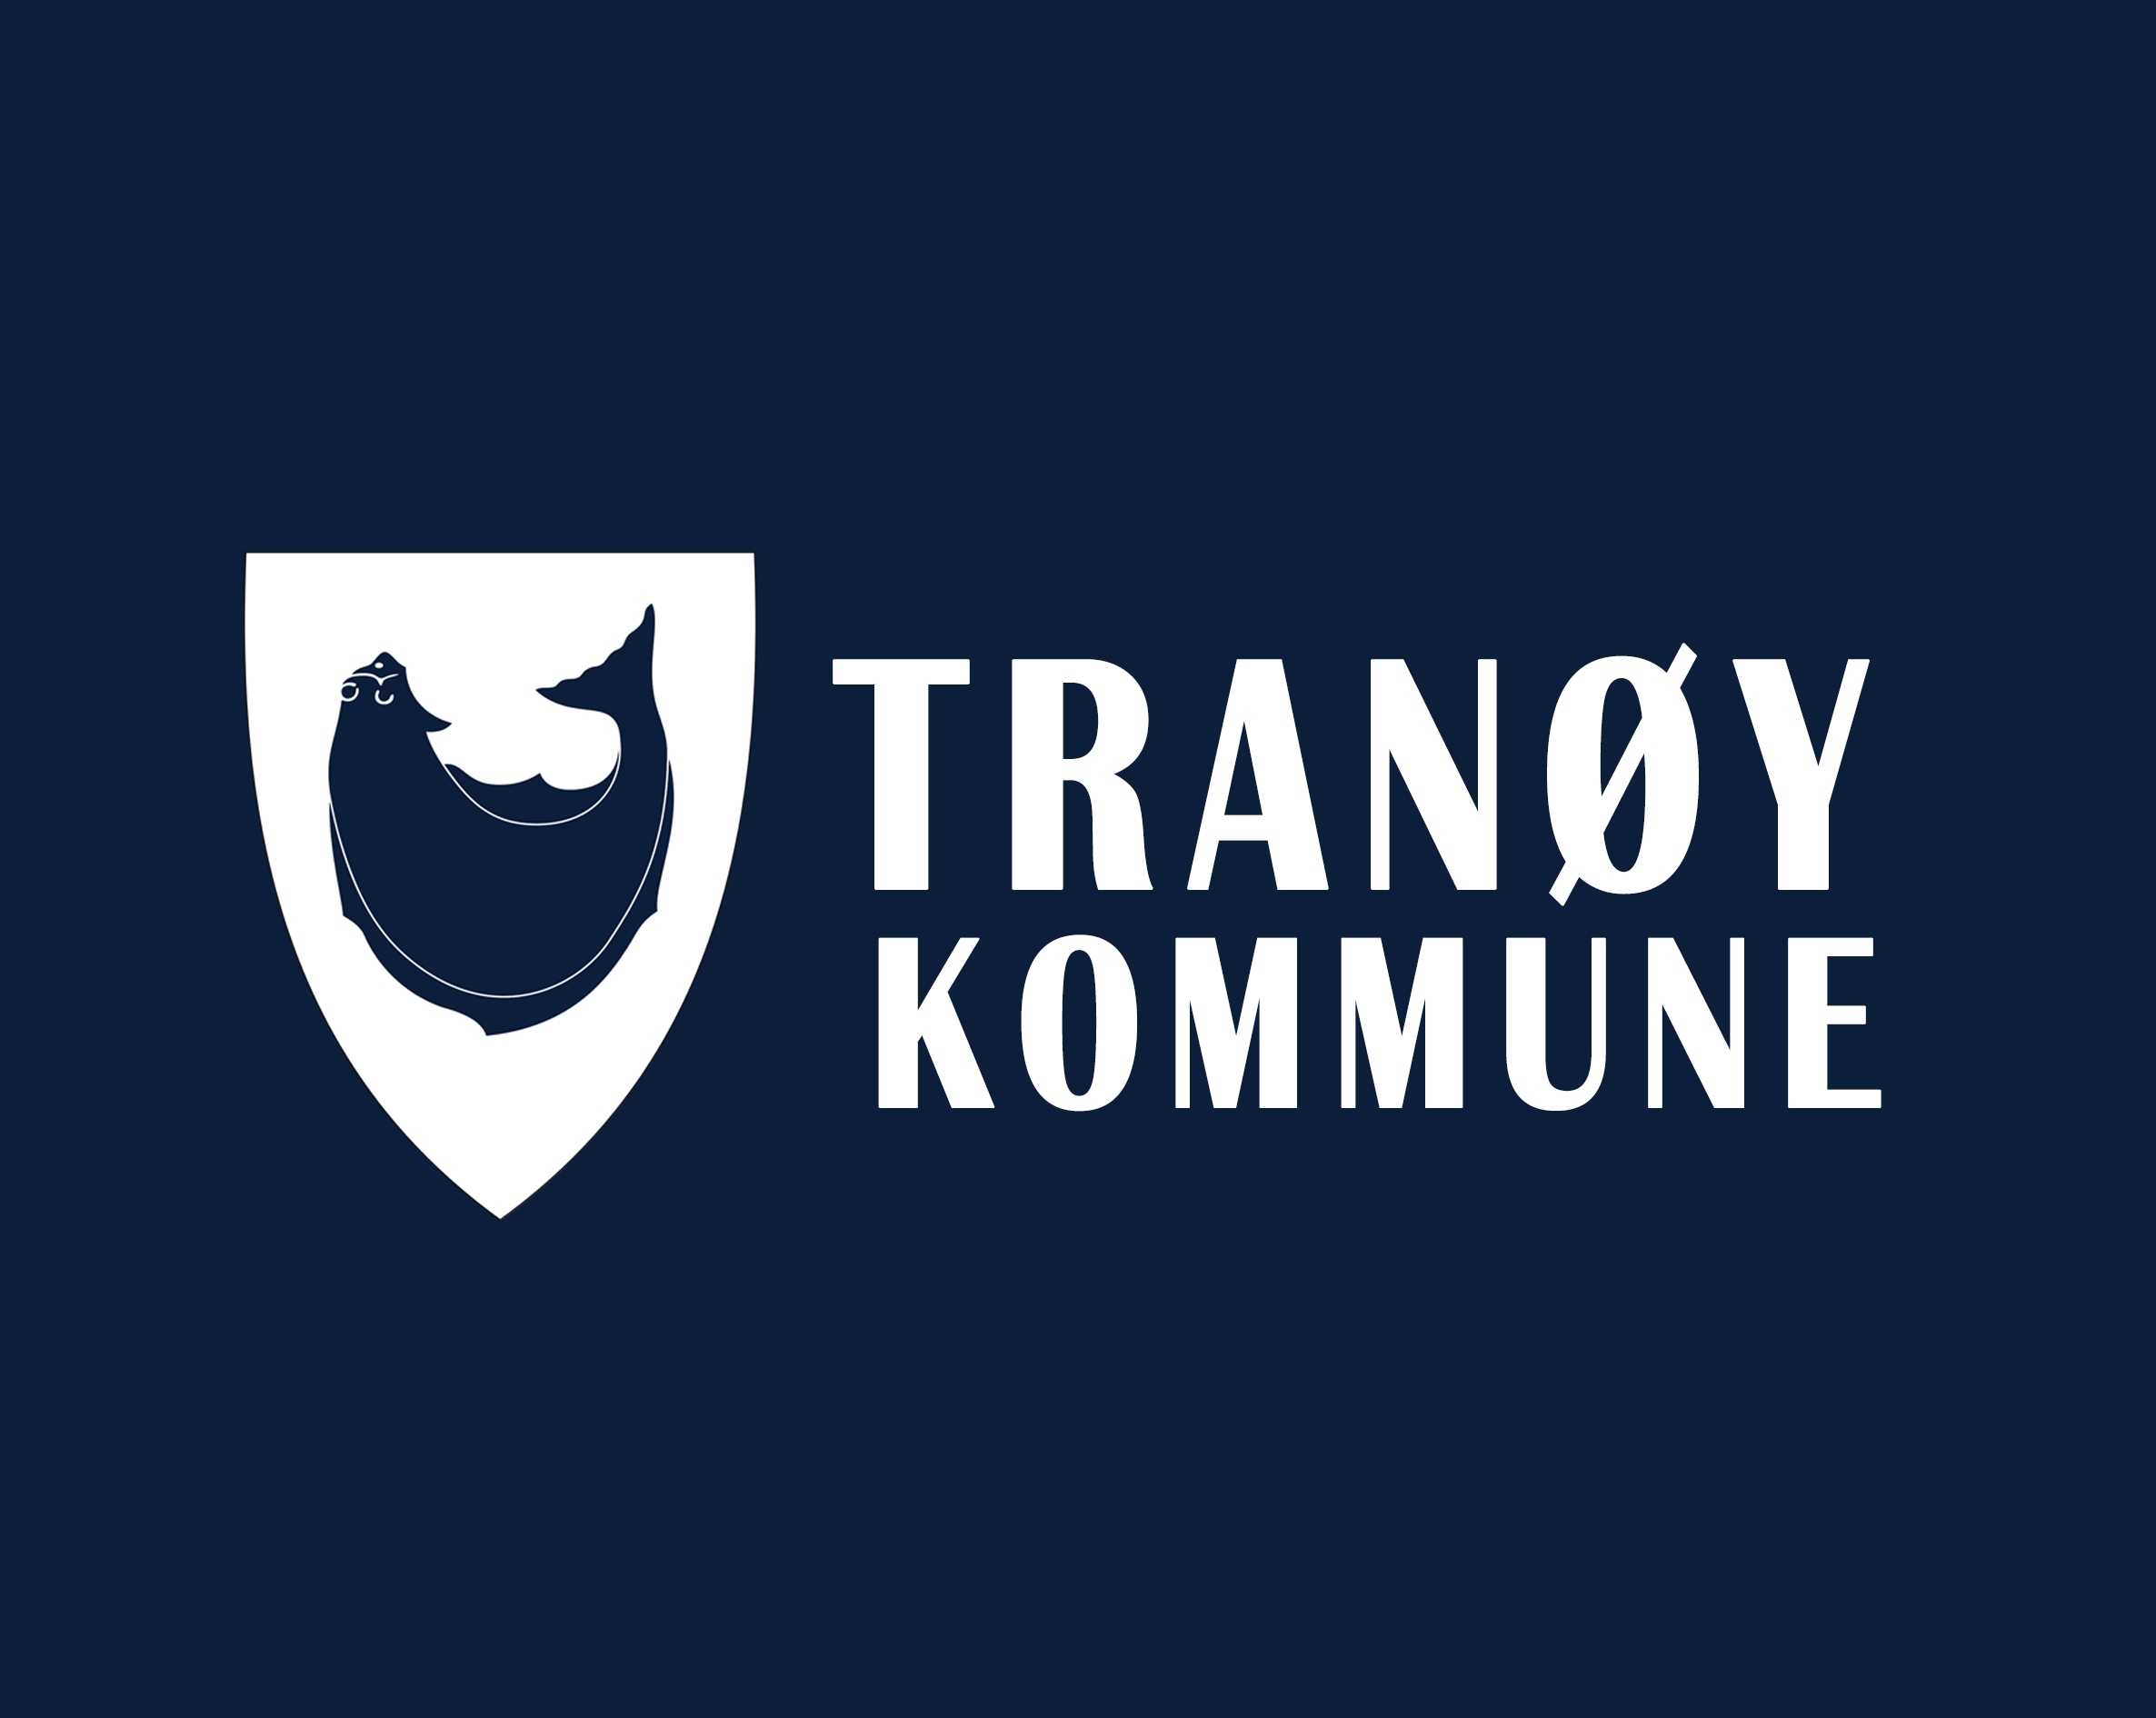 Tranøy kommune_highres_bluebackground